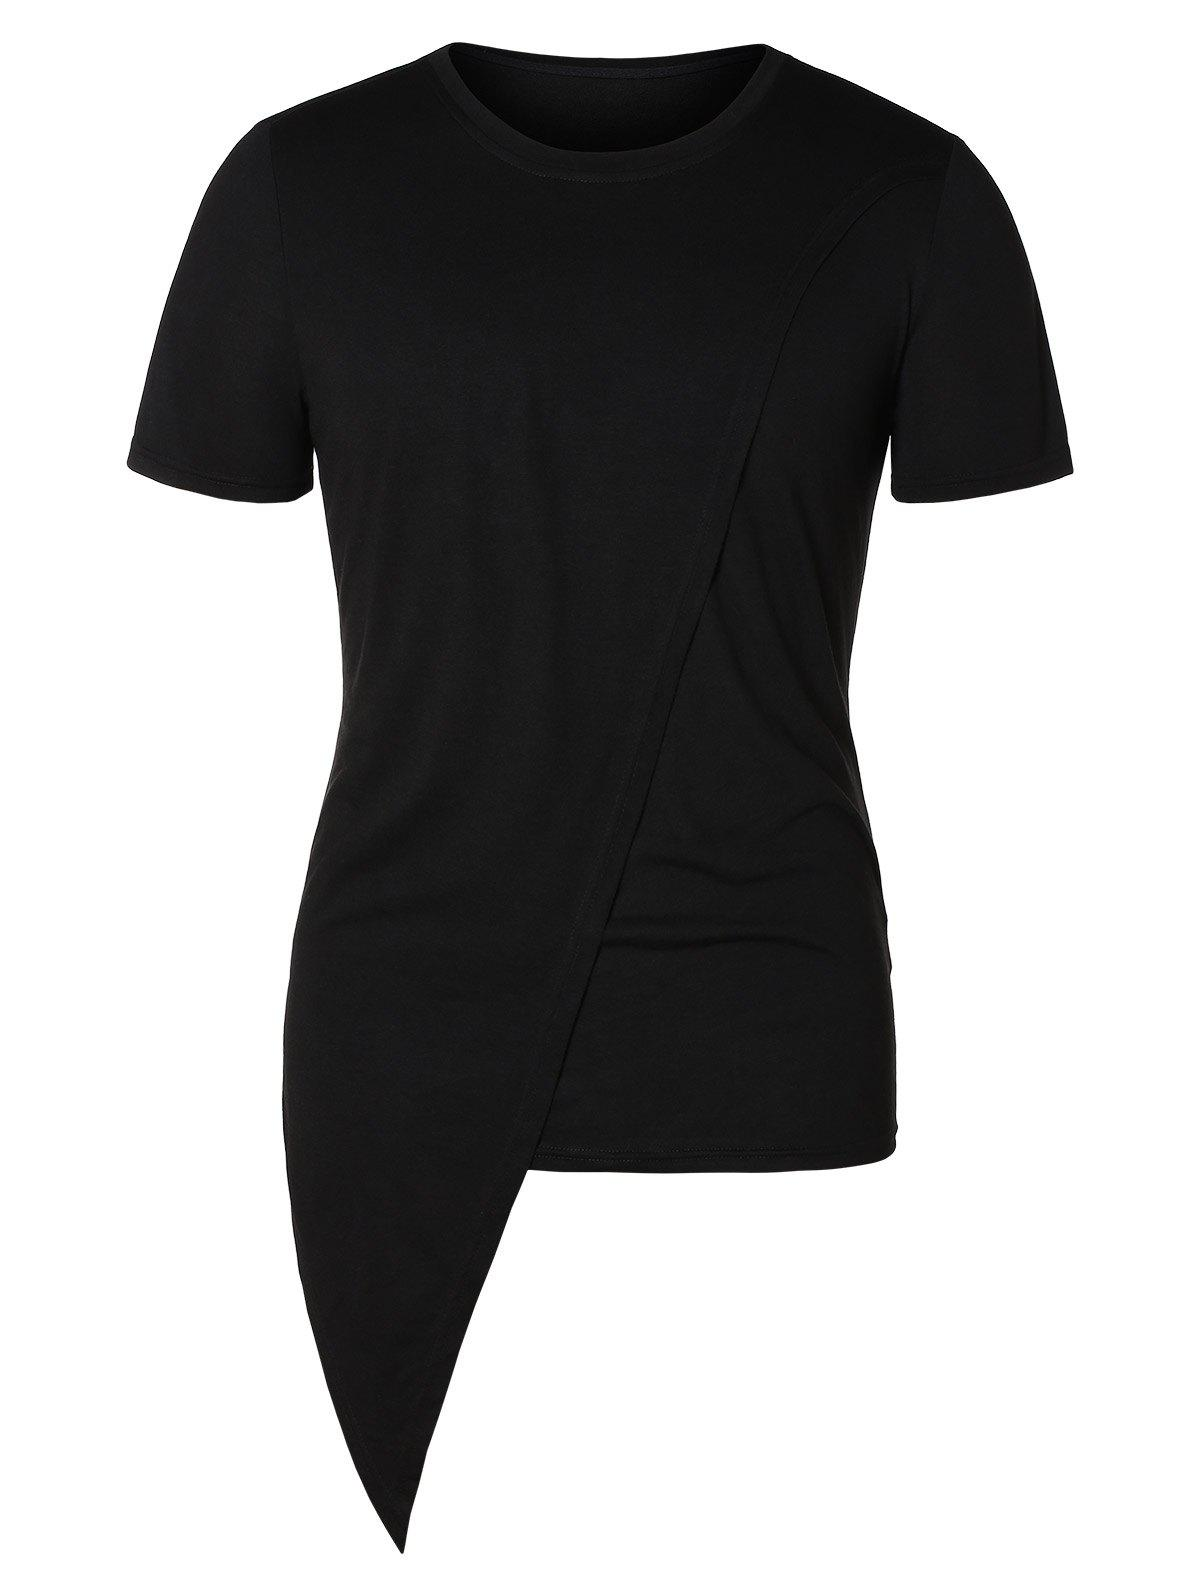 Sale Asymmetric Round Neck Short Sleeve Top